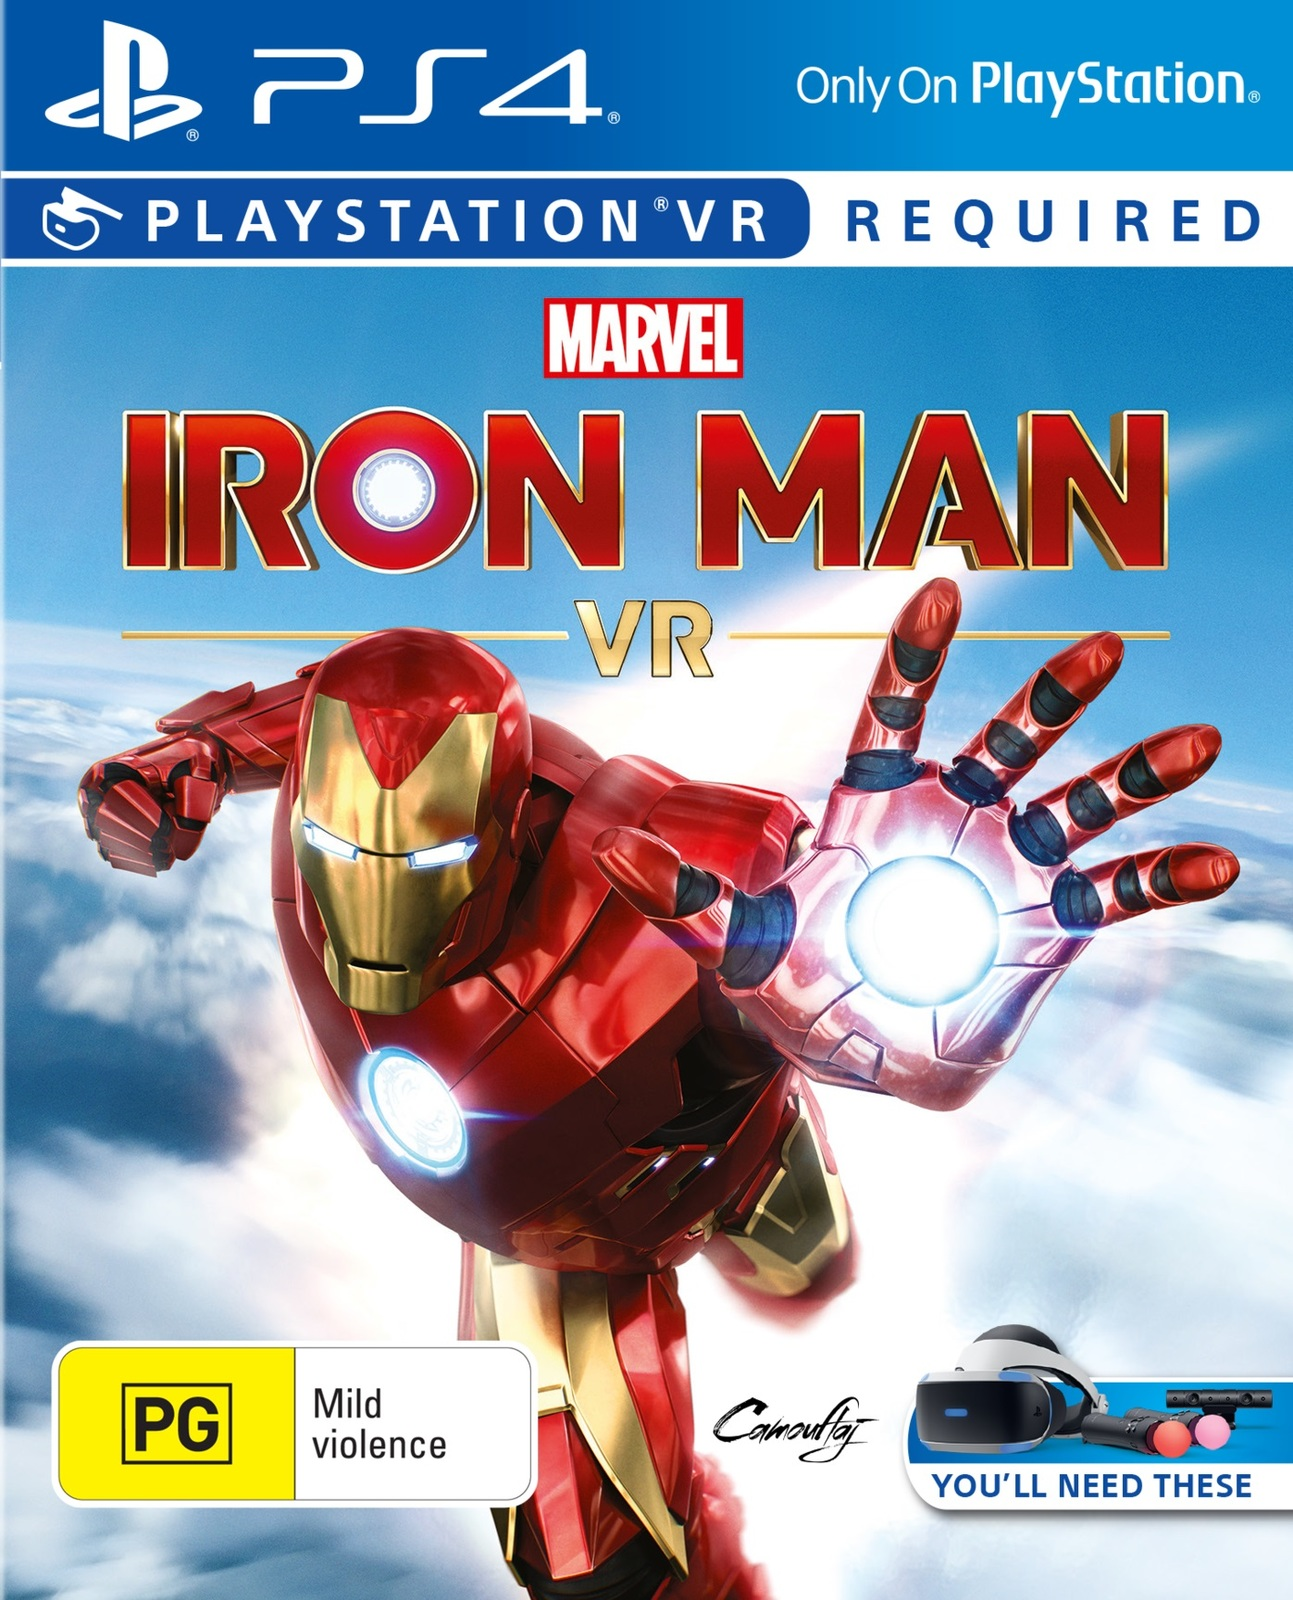 Marvel's Iron Man VR for PS4 image